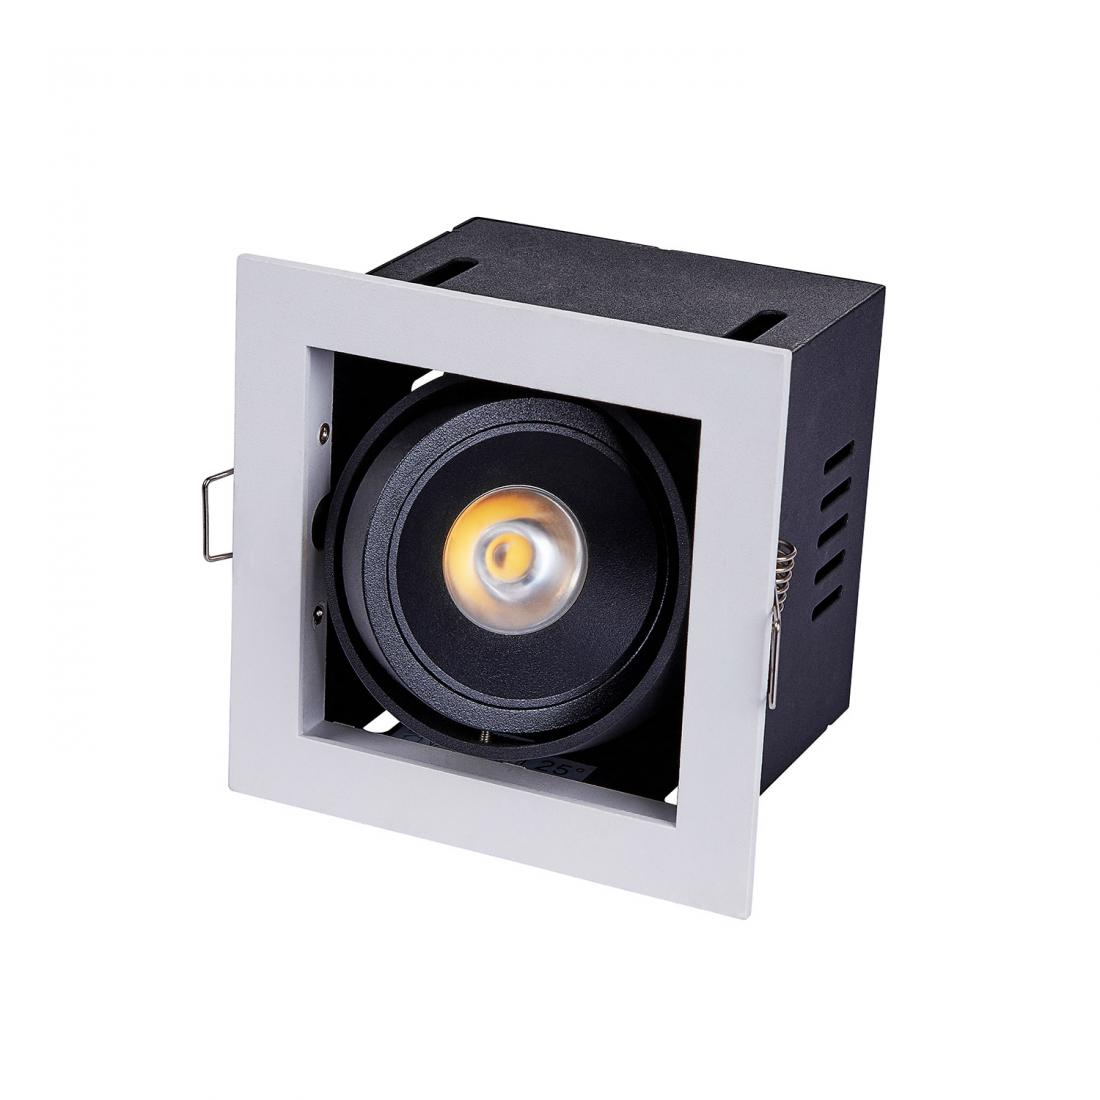 7W adjustable LED recessed square down light